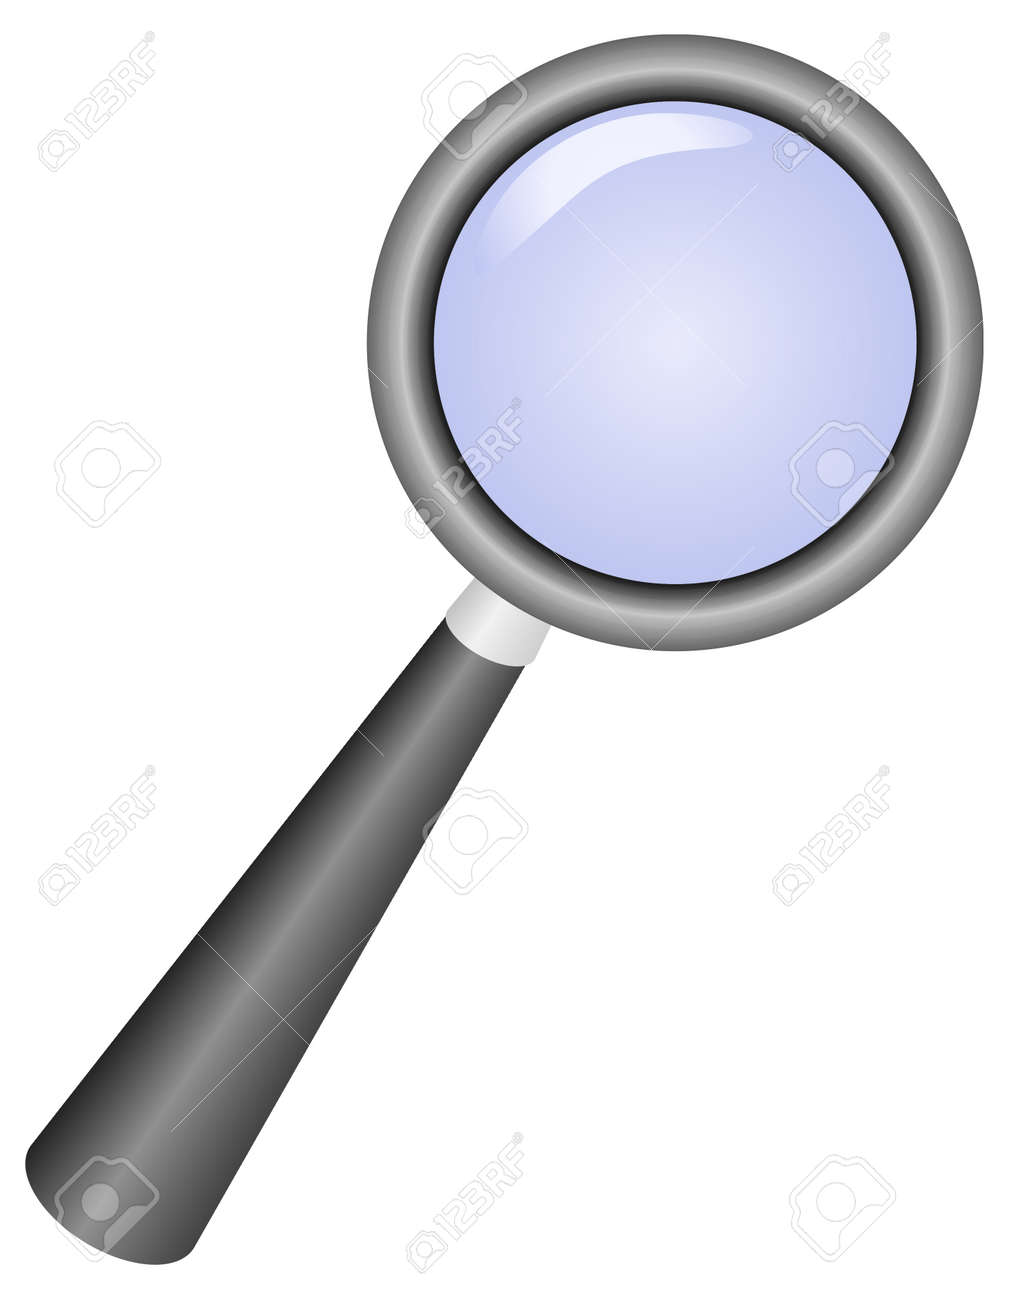 hight resolution of magnifying glass icon vector illustration stock vector 8911932